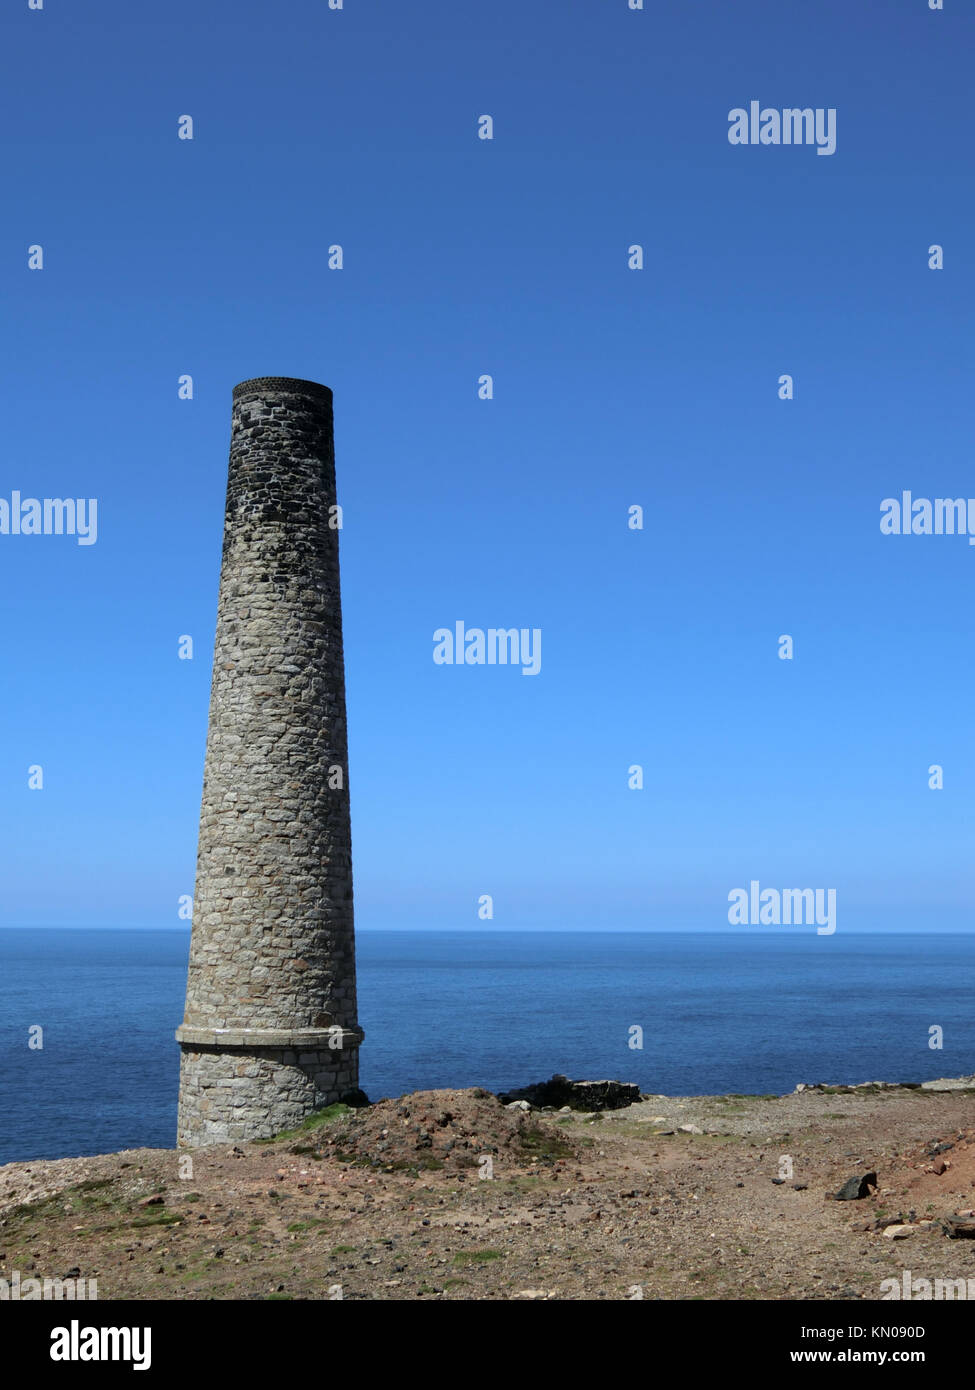 Arsenic Calciner Chimney Stack at Levant Tin Mine, UNESCO World Heritage Site, Pendeen, Cornwall, England, UK in - Stock Image